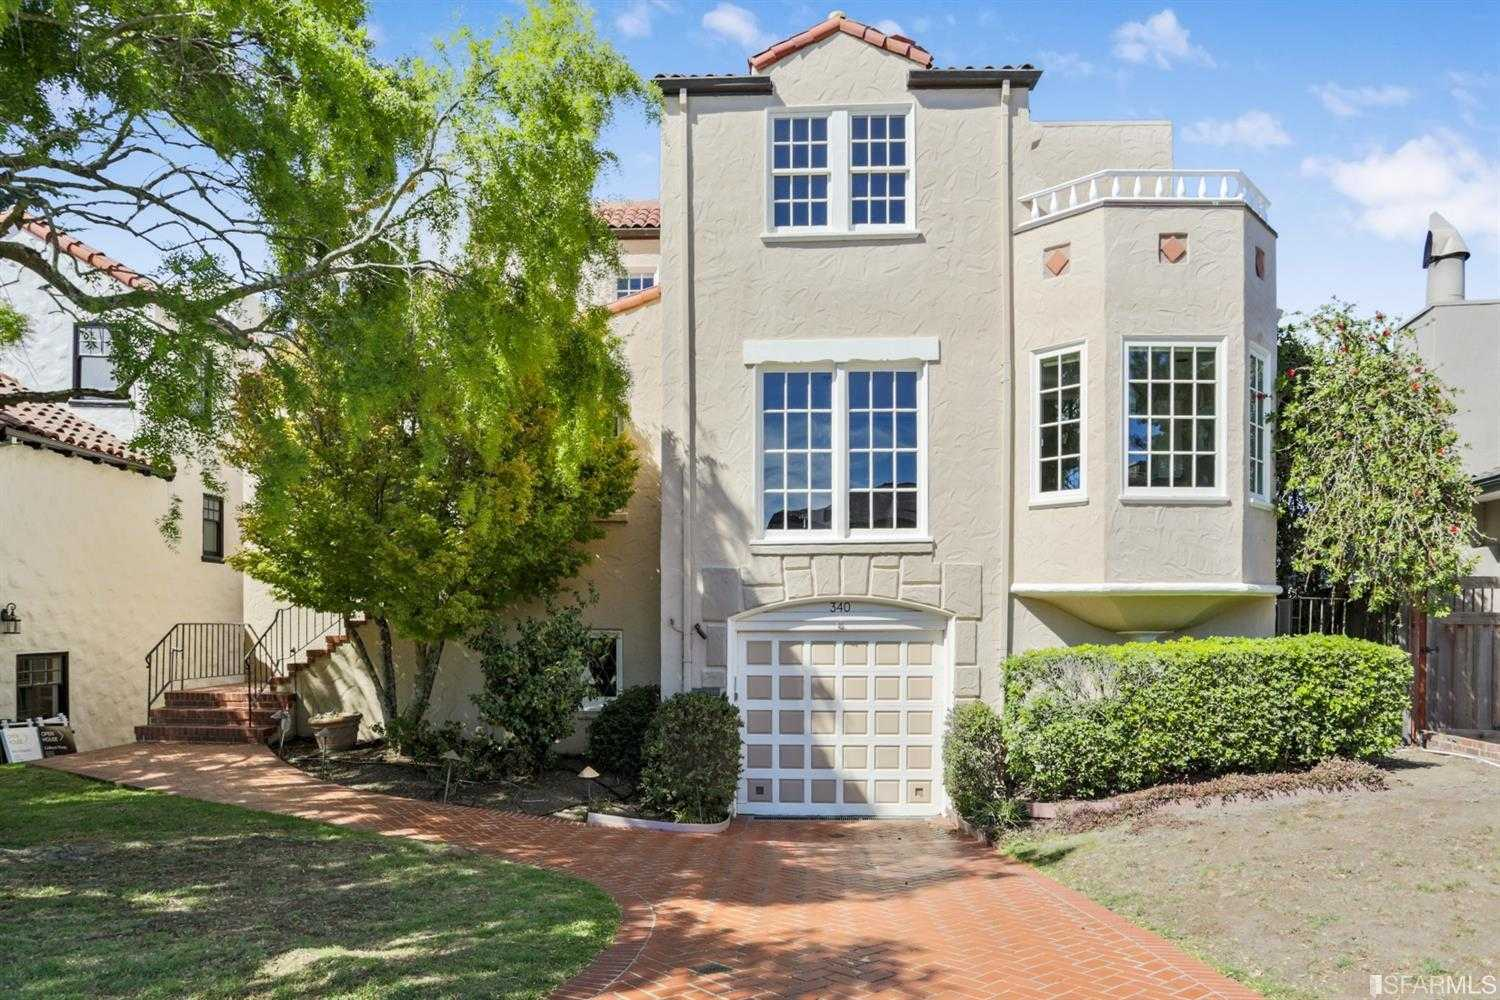 340 Brentwood Ave San Francisco, CA 94127